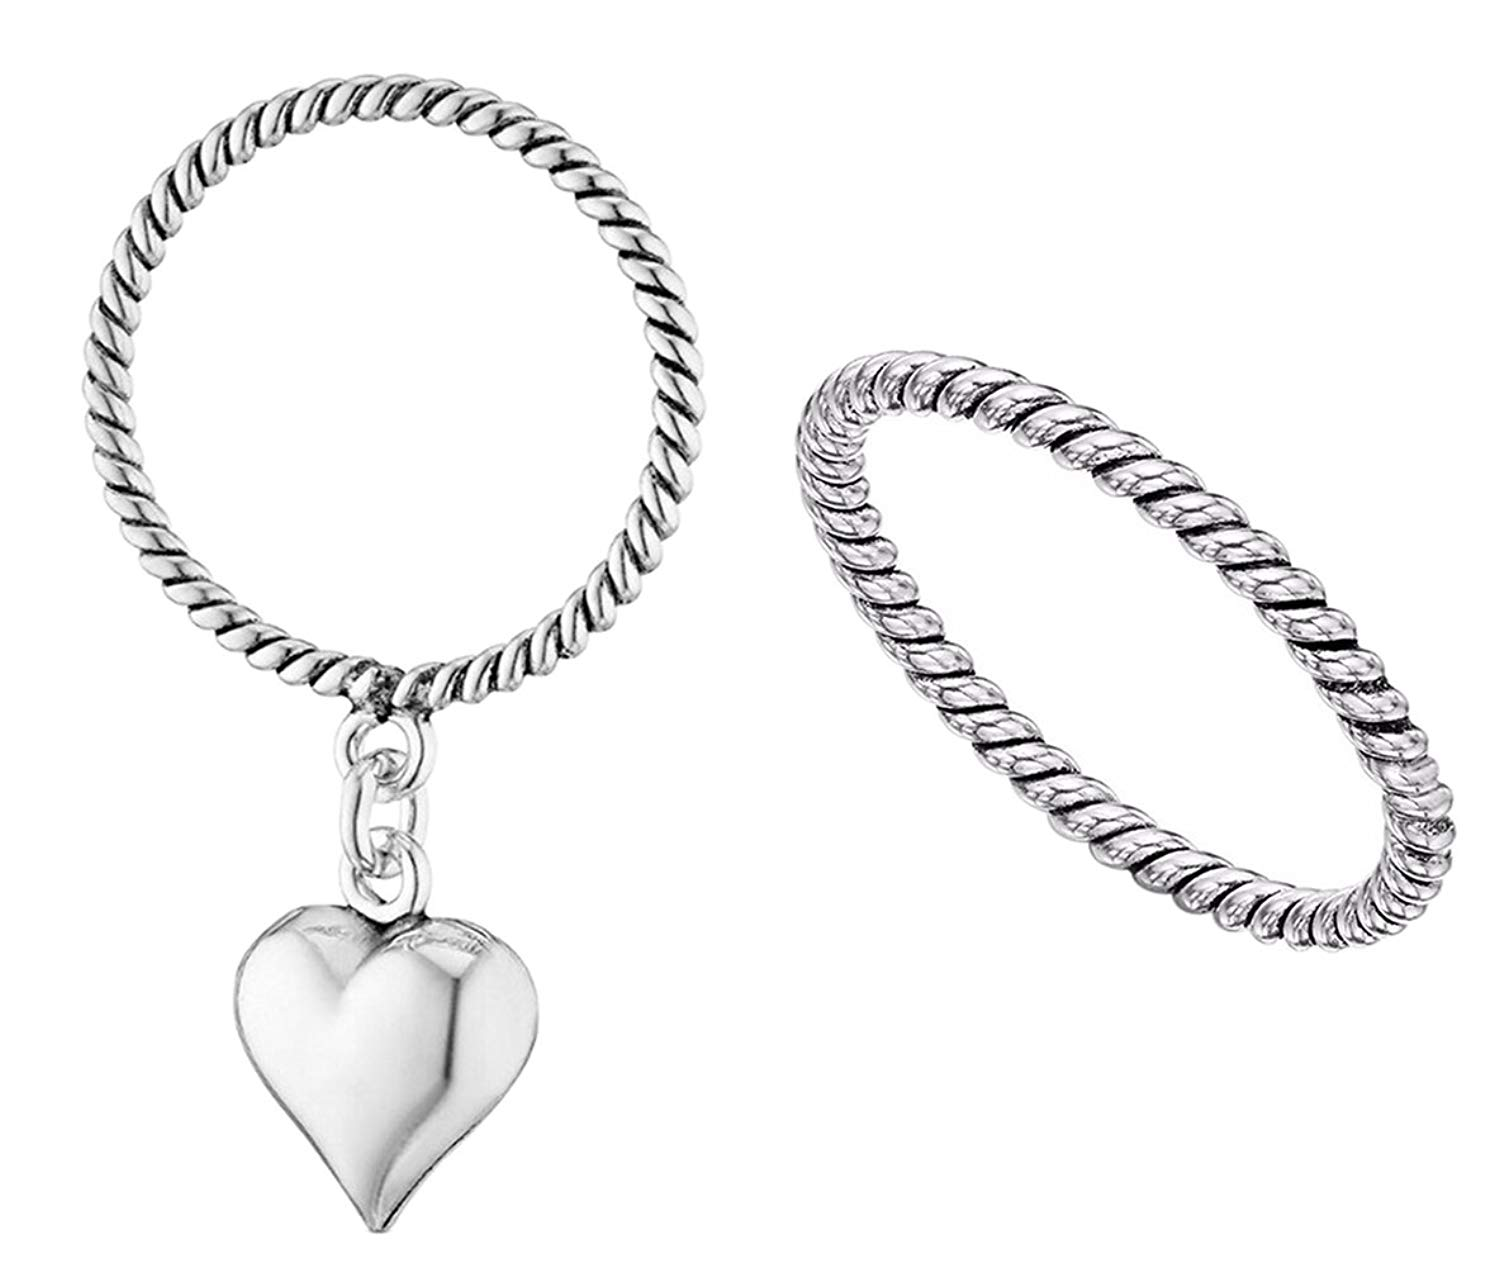 New Stackable Ring Set Heart & Rope Ring Set Sterling Silver Ring 925 Size 5